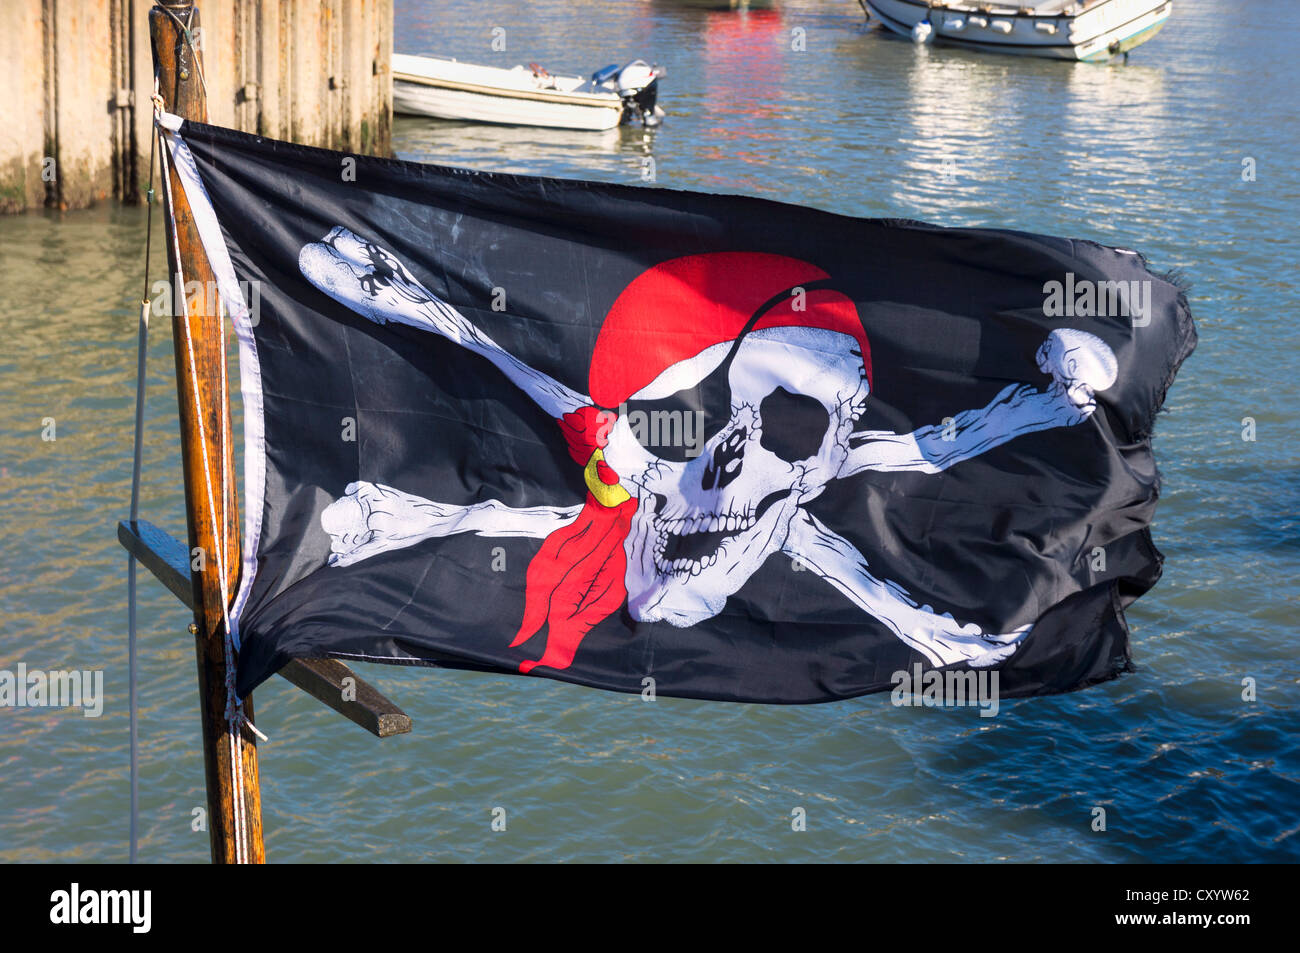 Jolly Roger flag, UK - Stock Image